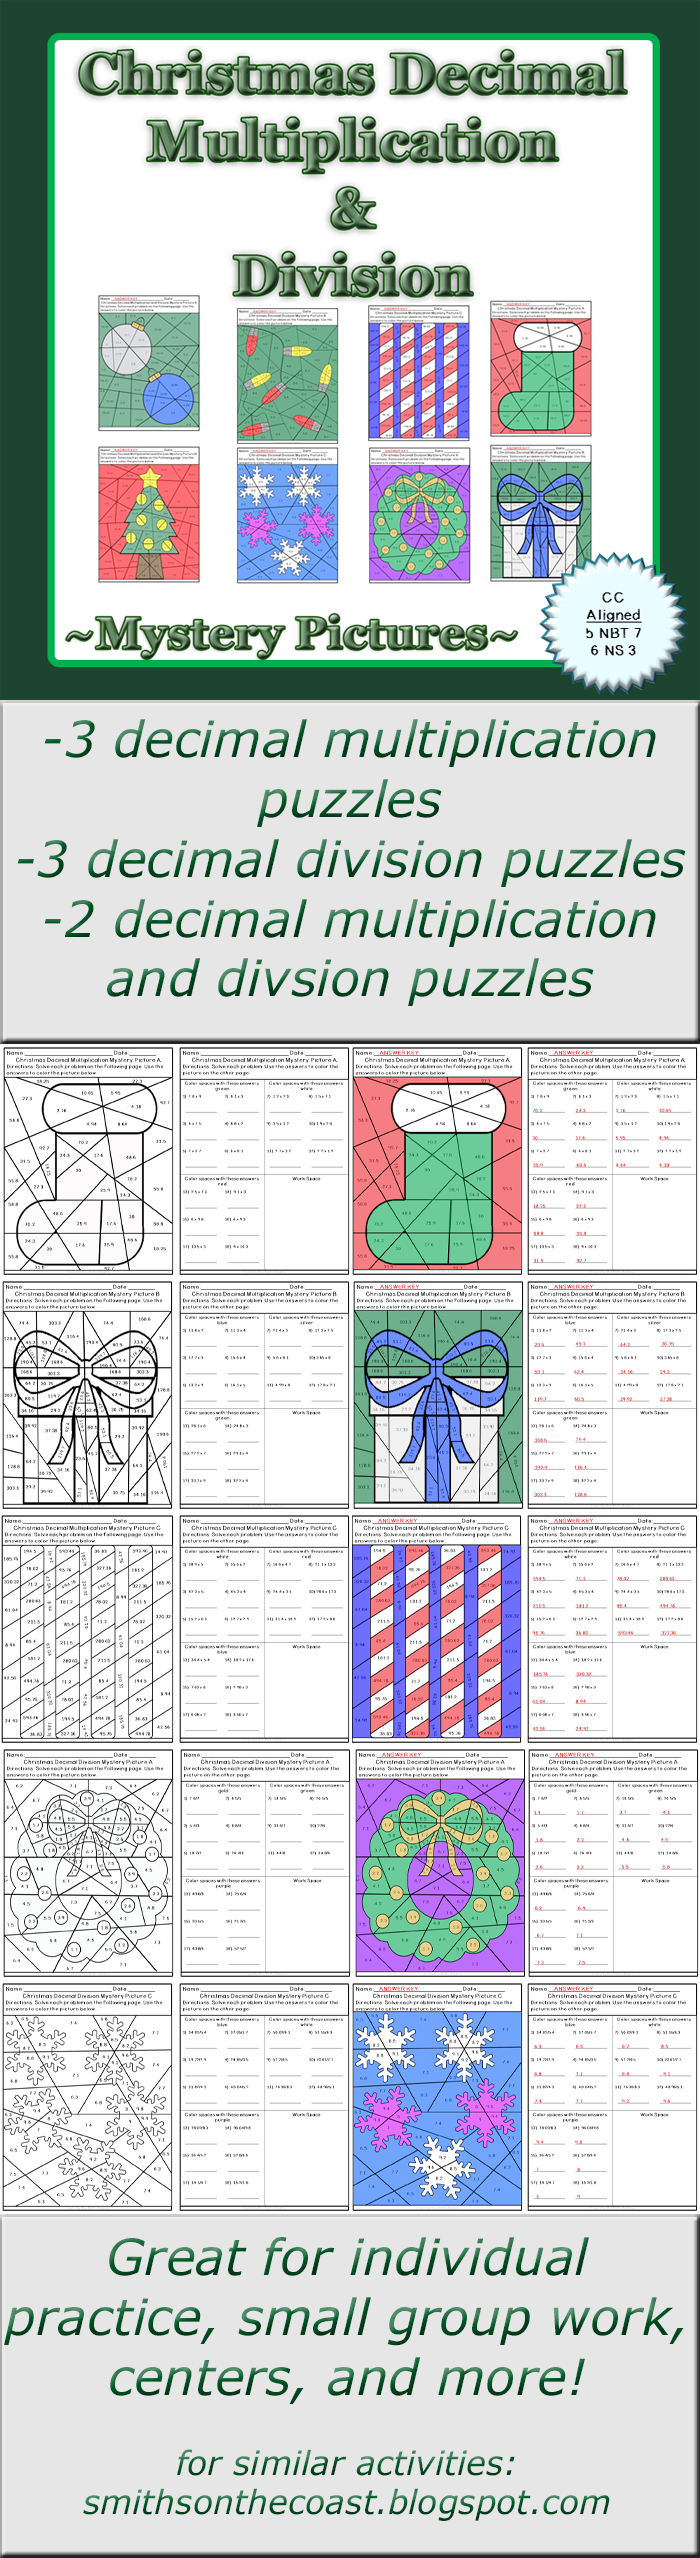 Christmas Decimal Multiplication and Division Mystery